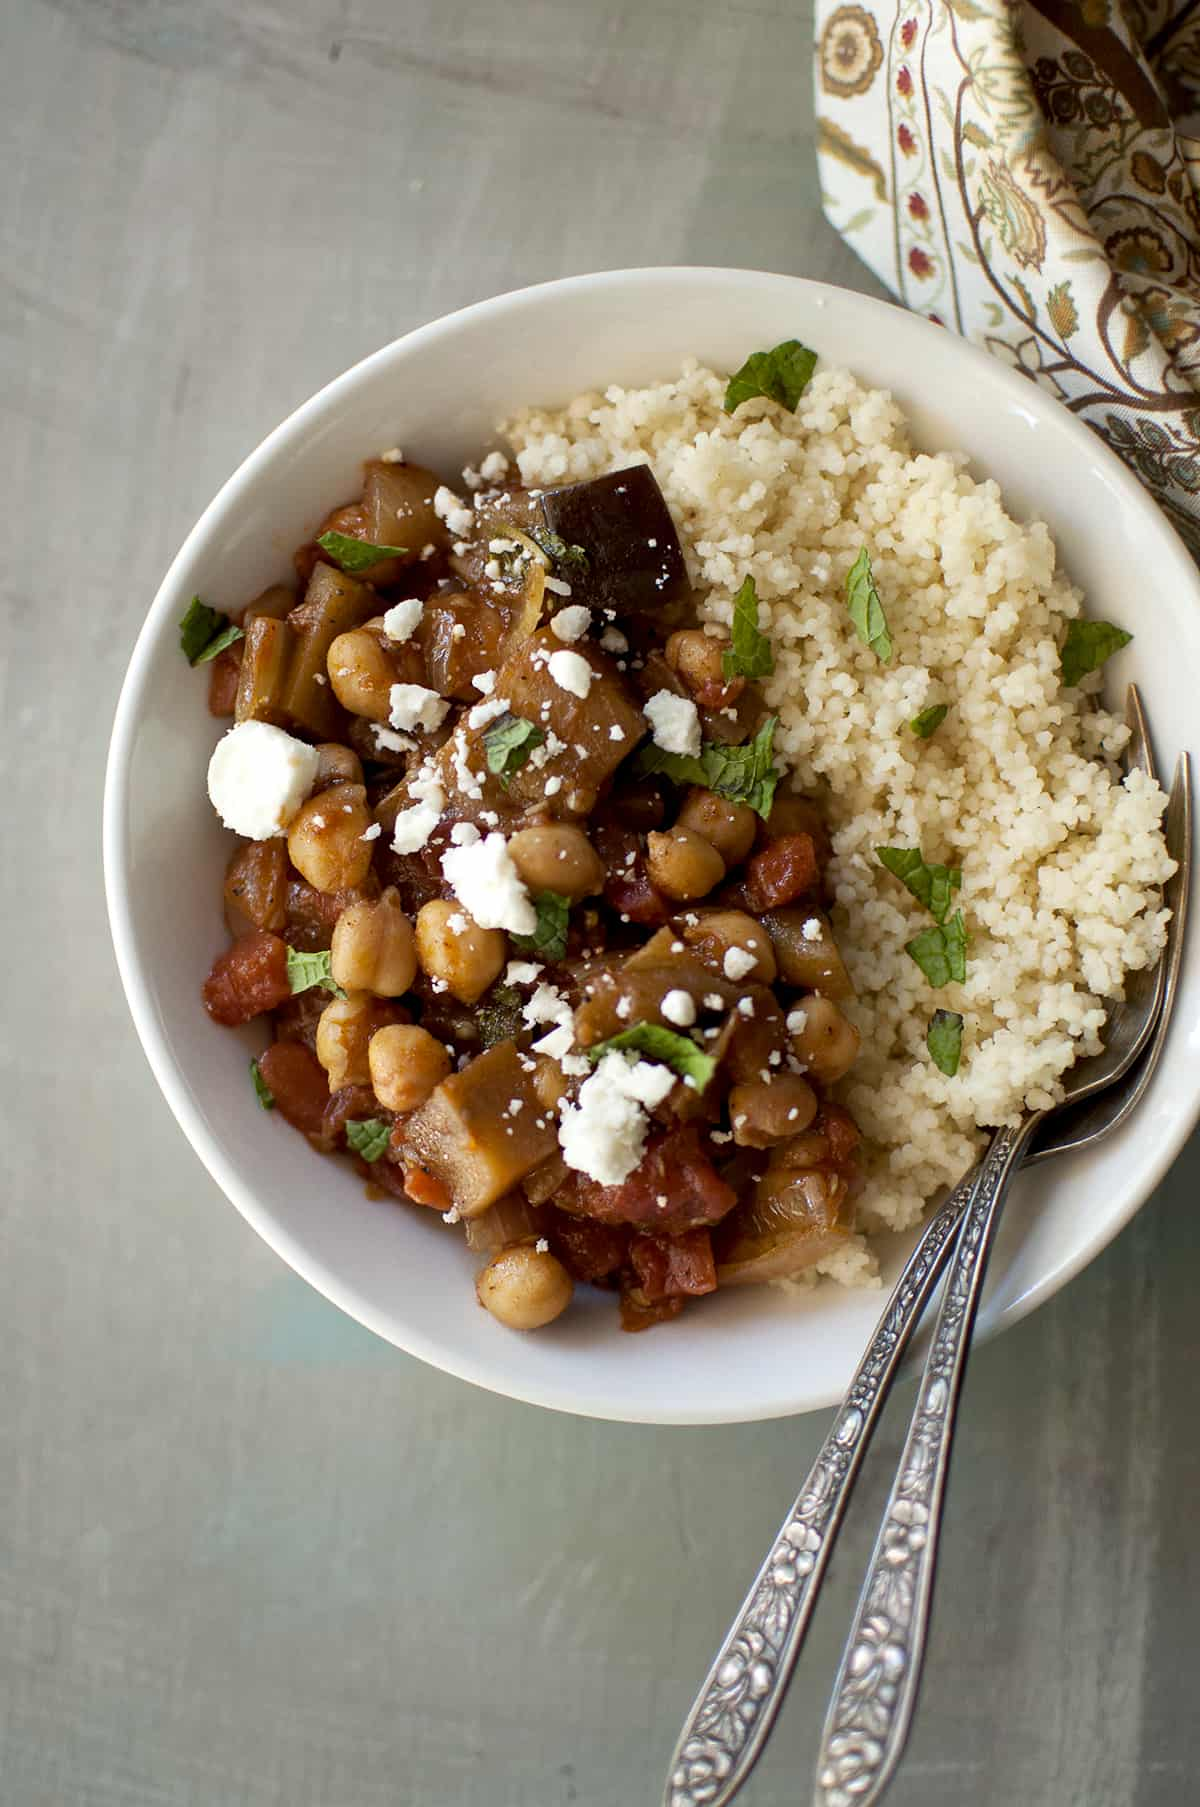 White bowl with eggplant and chickpea stew served with couscous